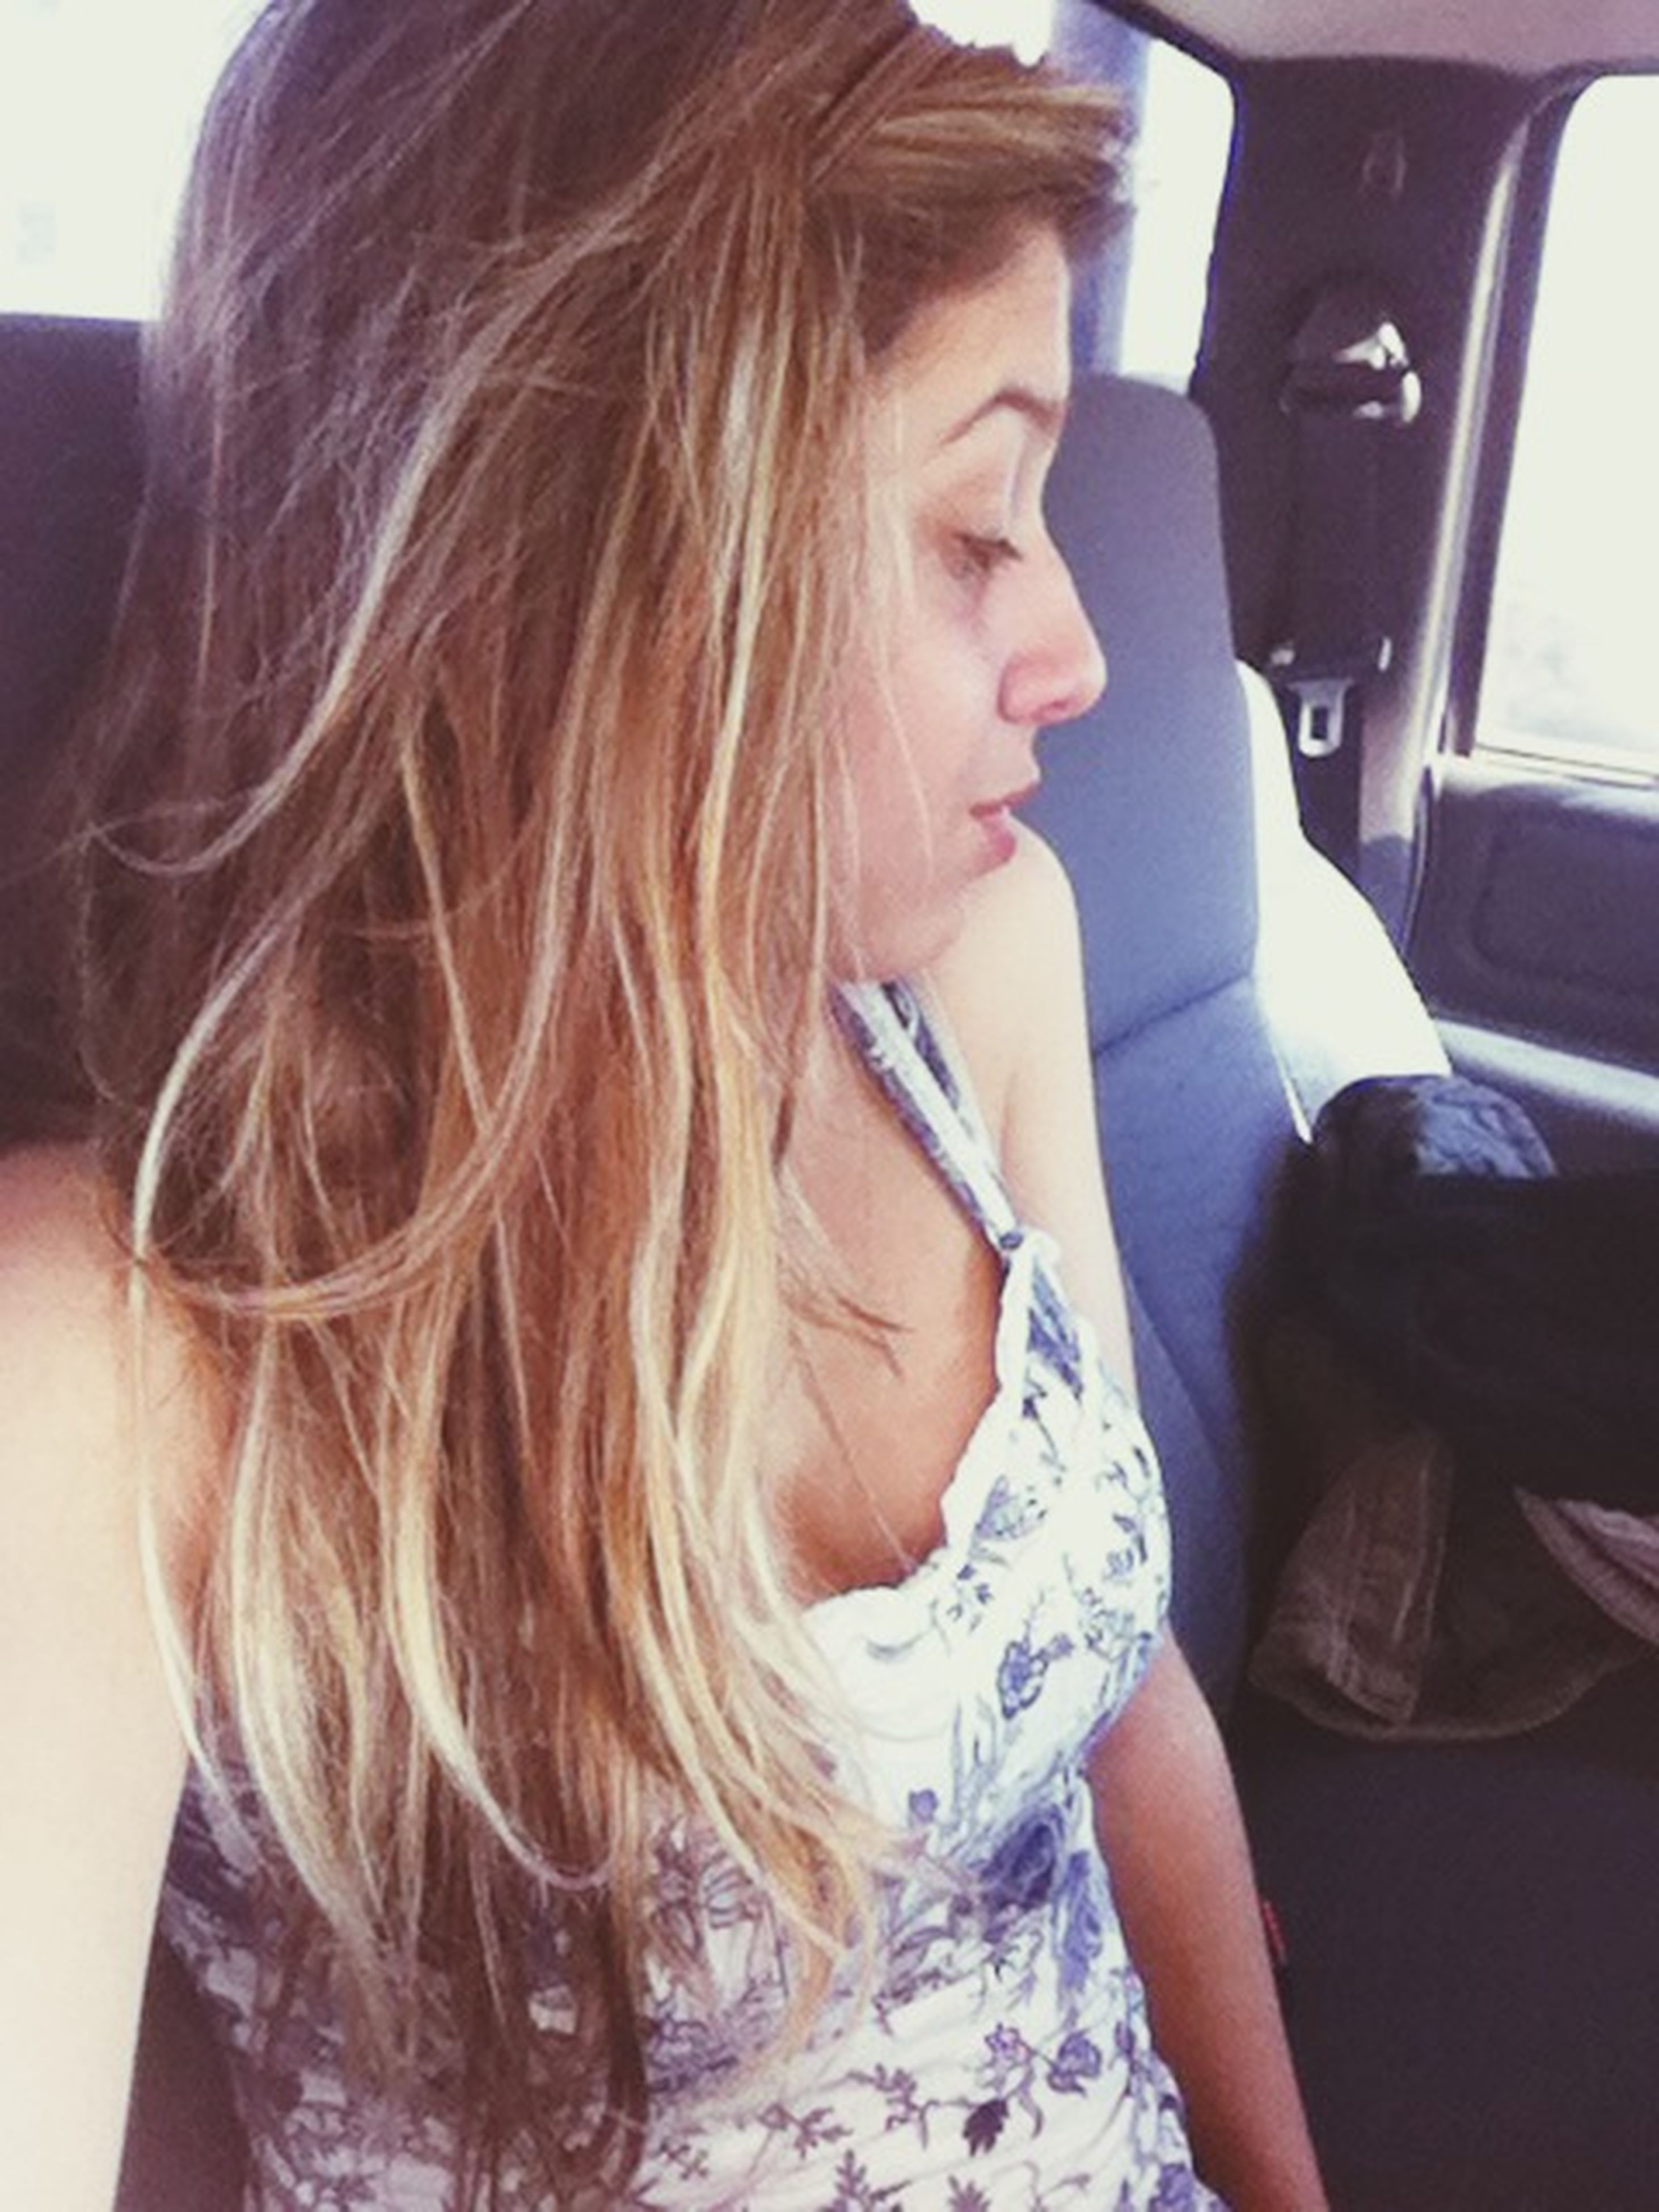 lifestyles, person, leisure activity, indoors, young women, long hair, young adult, headshot, casual clothing, vehicle interior, sitting, transportation, holding, car, brown hair, waist up, blond hair